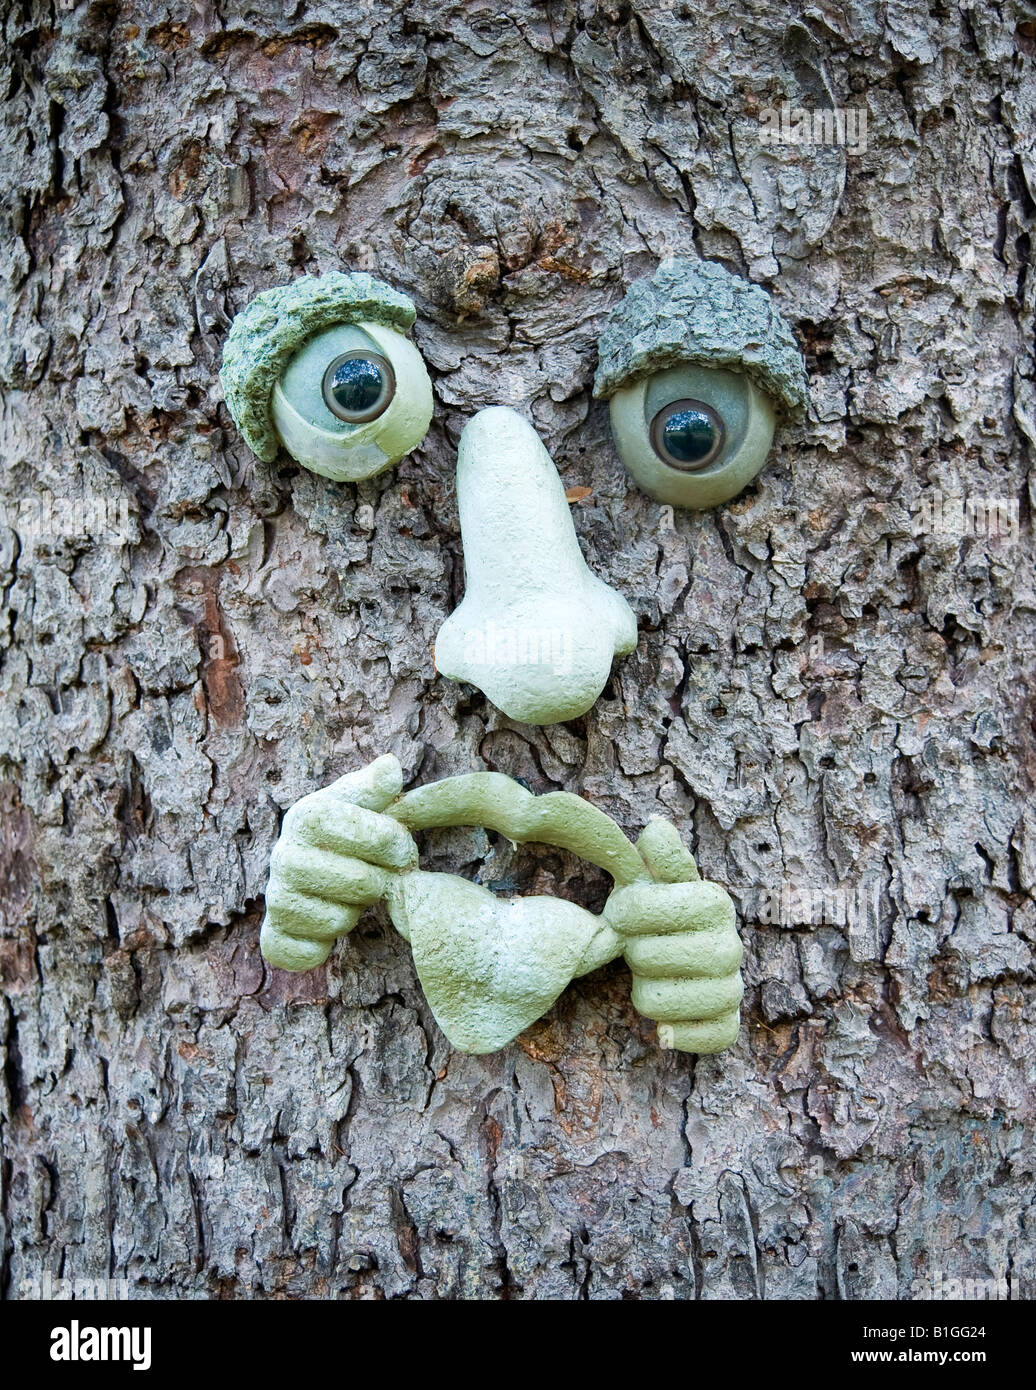 artistic ceramic face parts on pine tree bark - Stock Image